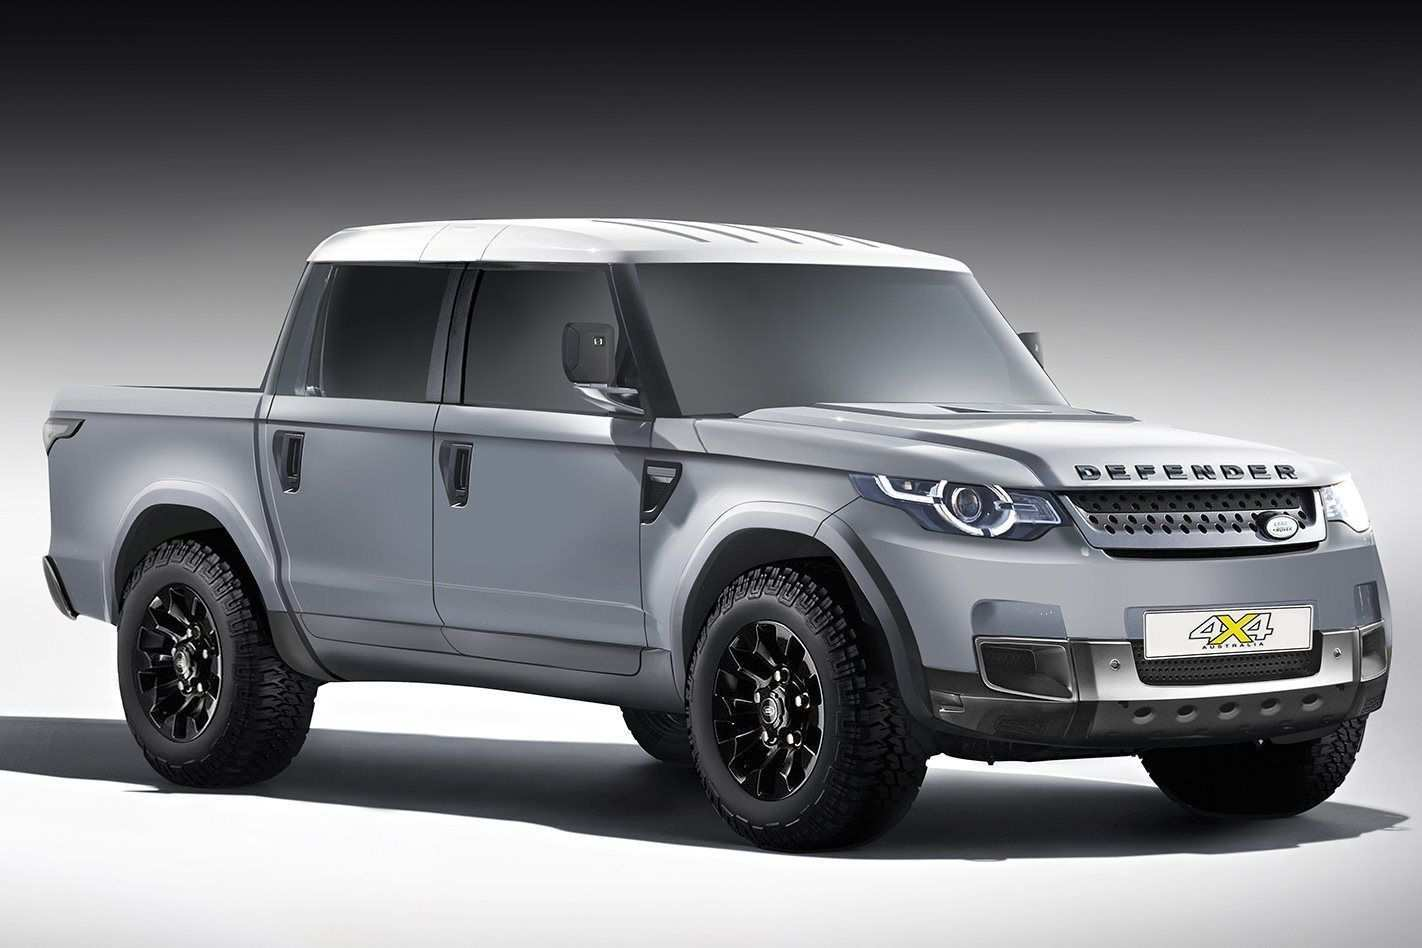 26 Best Review 2020 Land Rover Concept for 2020 Land Rover